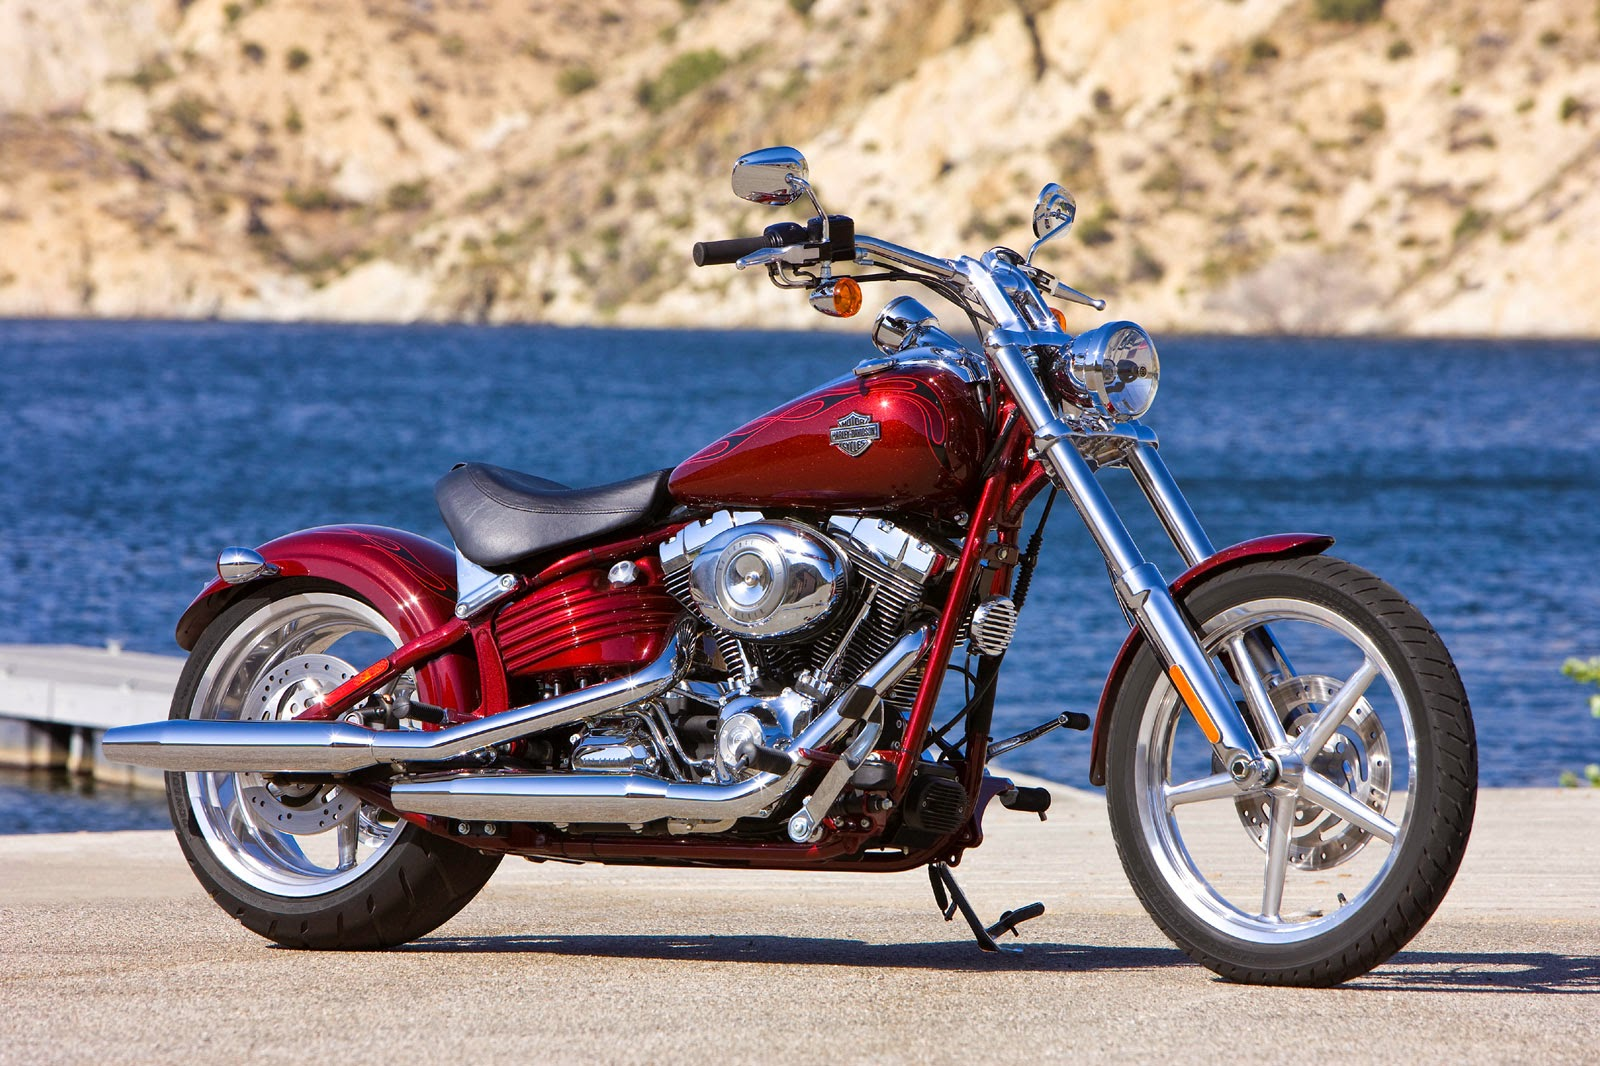 Harley Davidson Dyna Service Manual Free Download